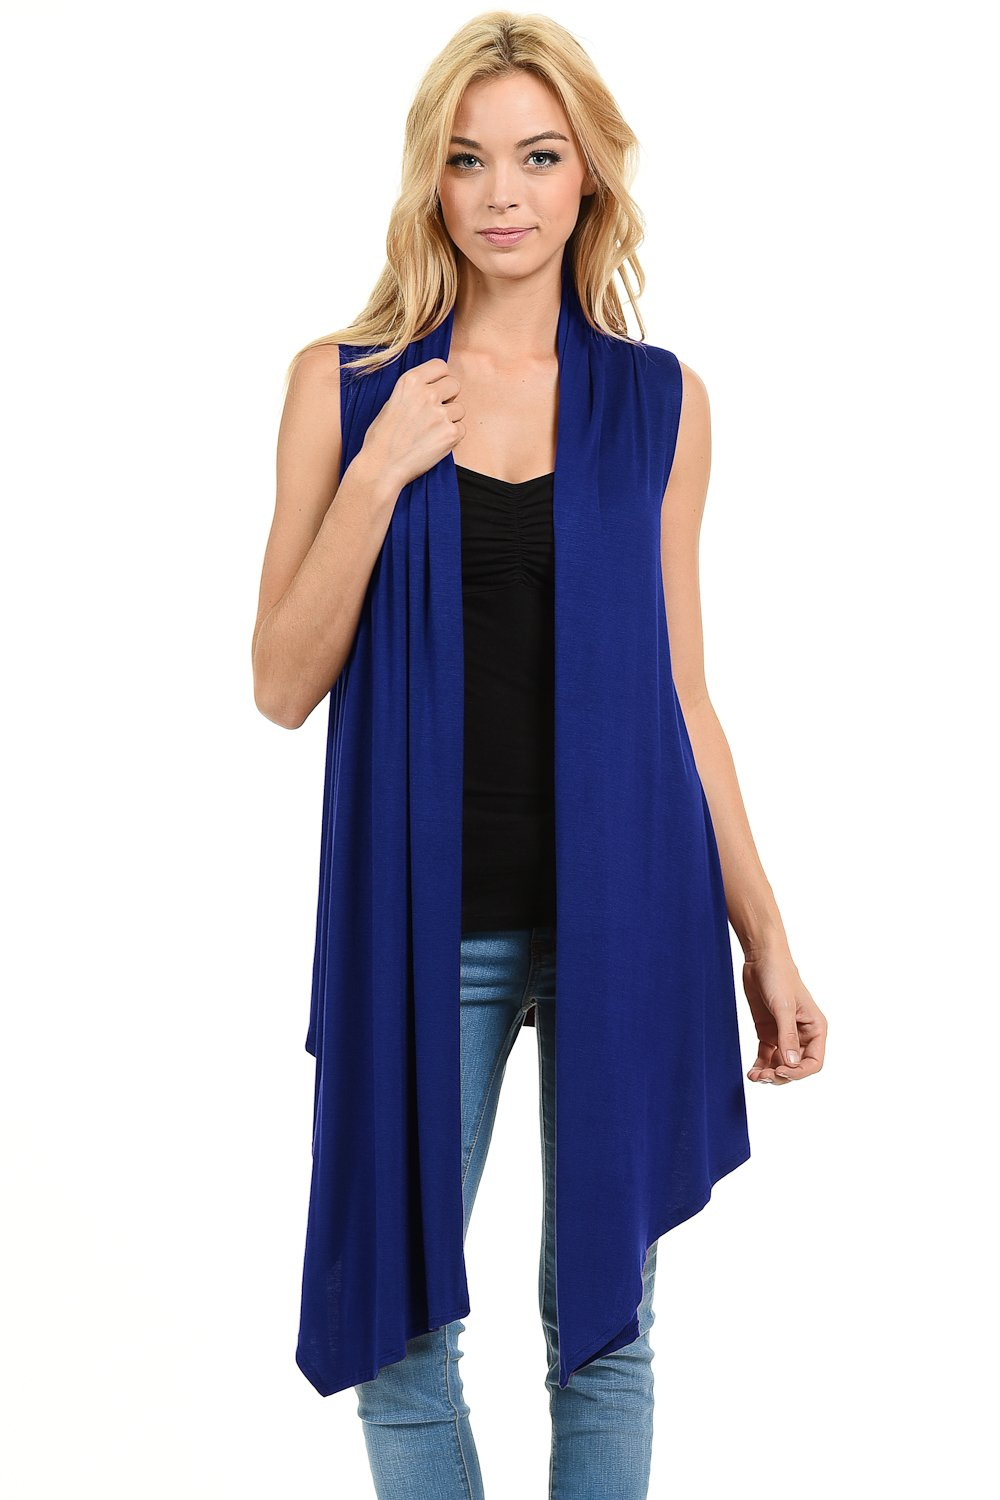 iconic luxe Women's Soft Premium Jersey Sleeveless Asymmetrical Open Front Cardigan 3031-45RB1XL